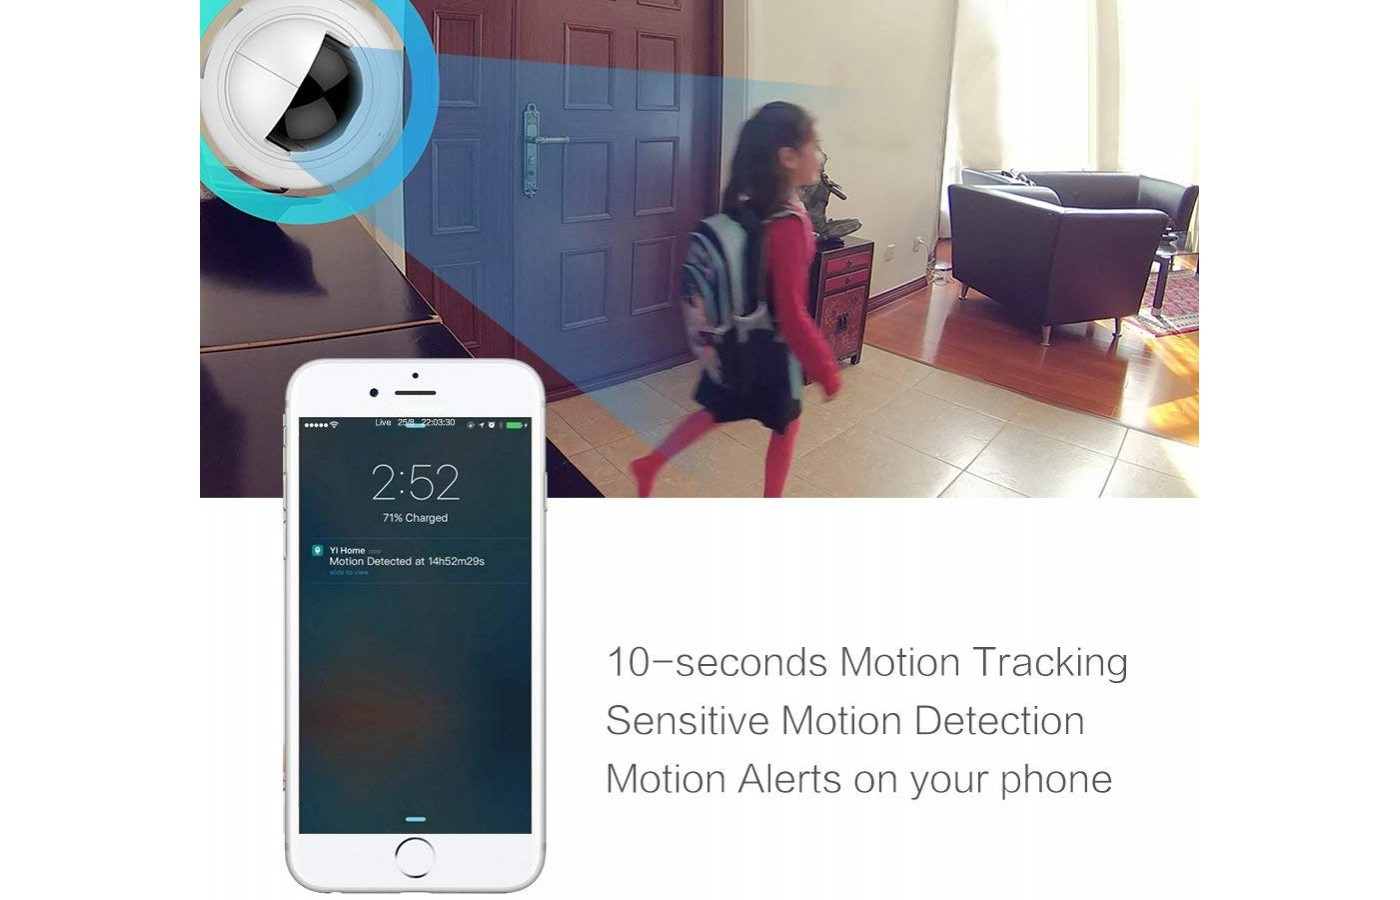 The camera will be able to detect motion and send you notifications accordingly